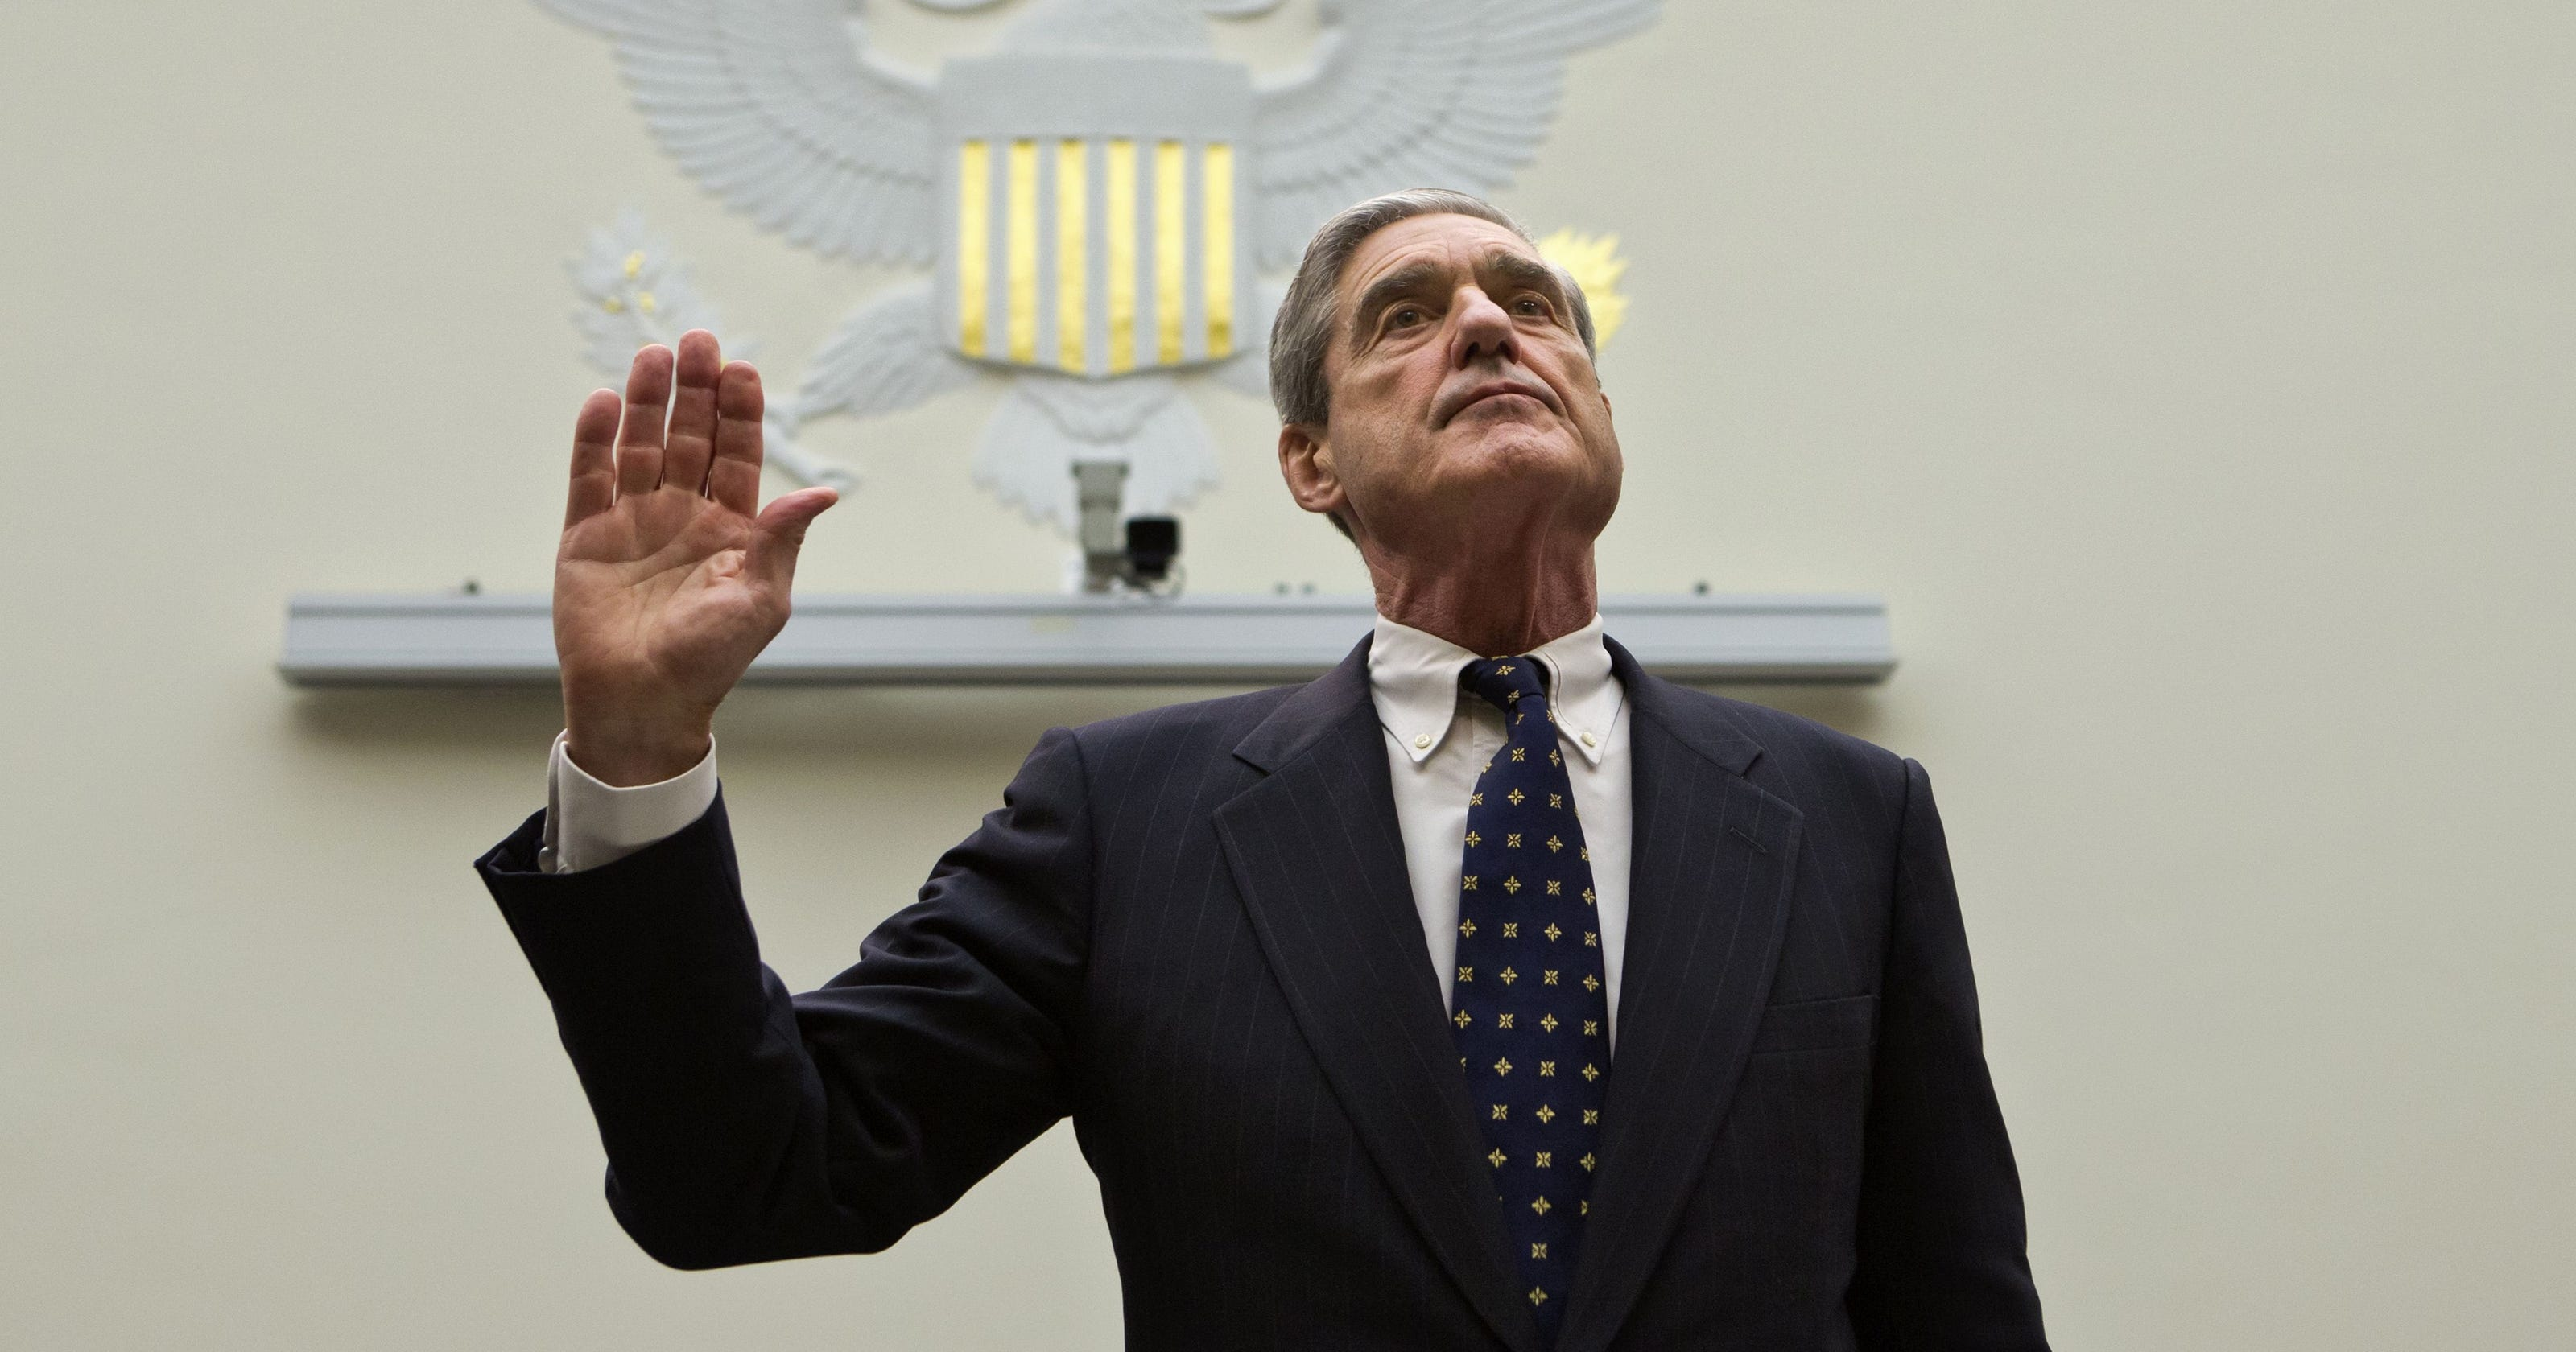 7 things to know about Robert Mueller 5a6dcf122